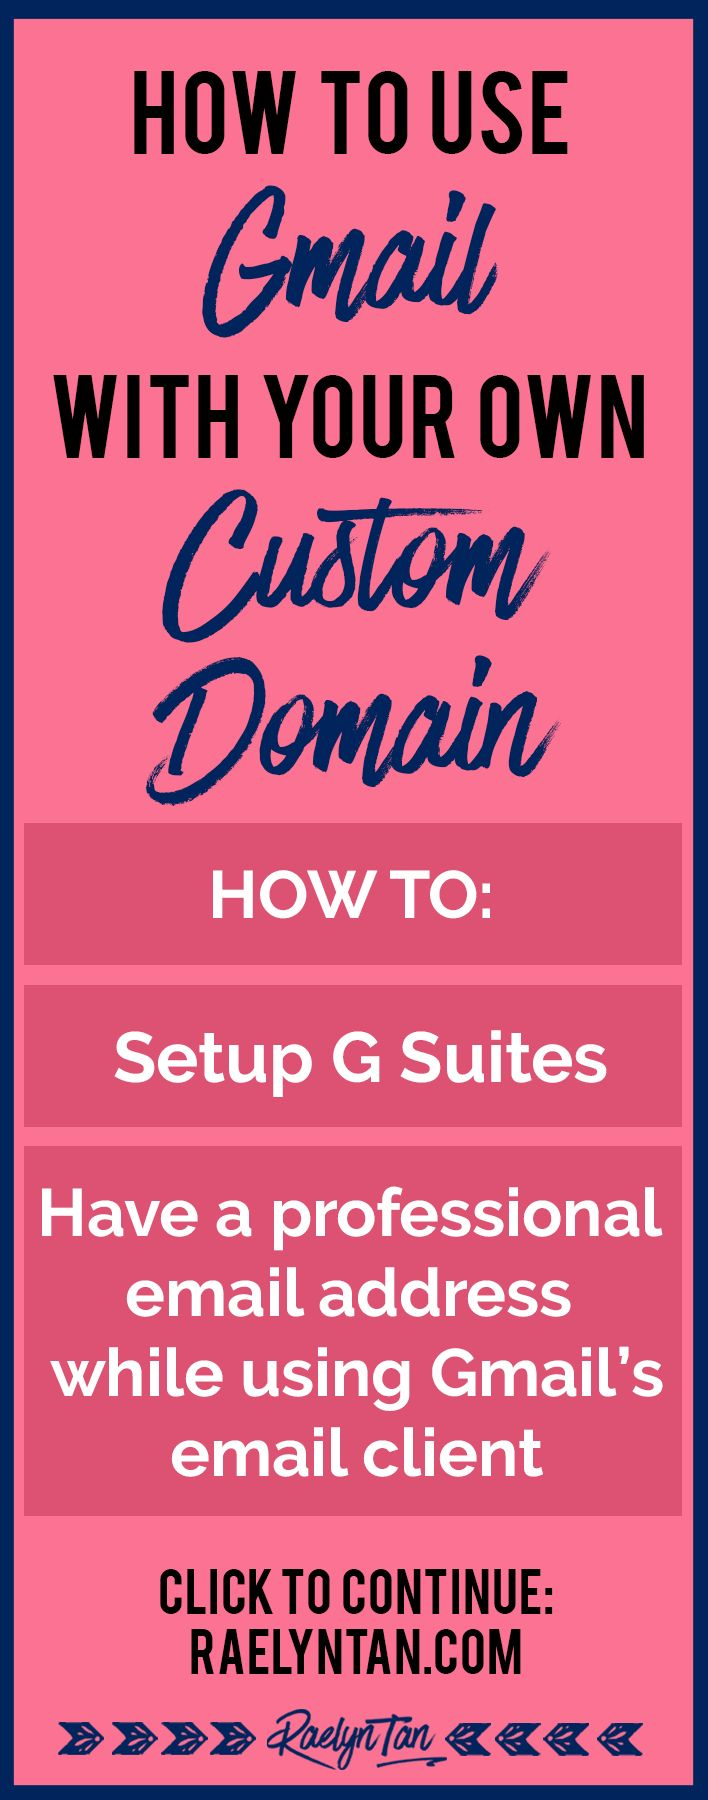 best 25 email address ideas on pinterest email id email accounts free and create free email. Black Bedroom Furniture Sets. Home Design Ideas